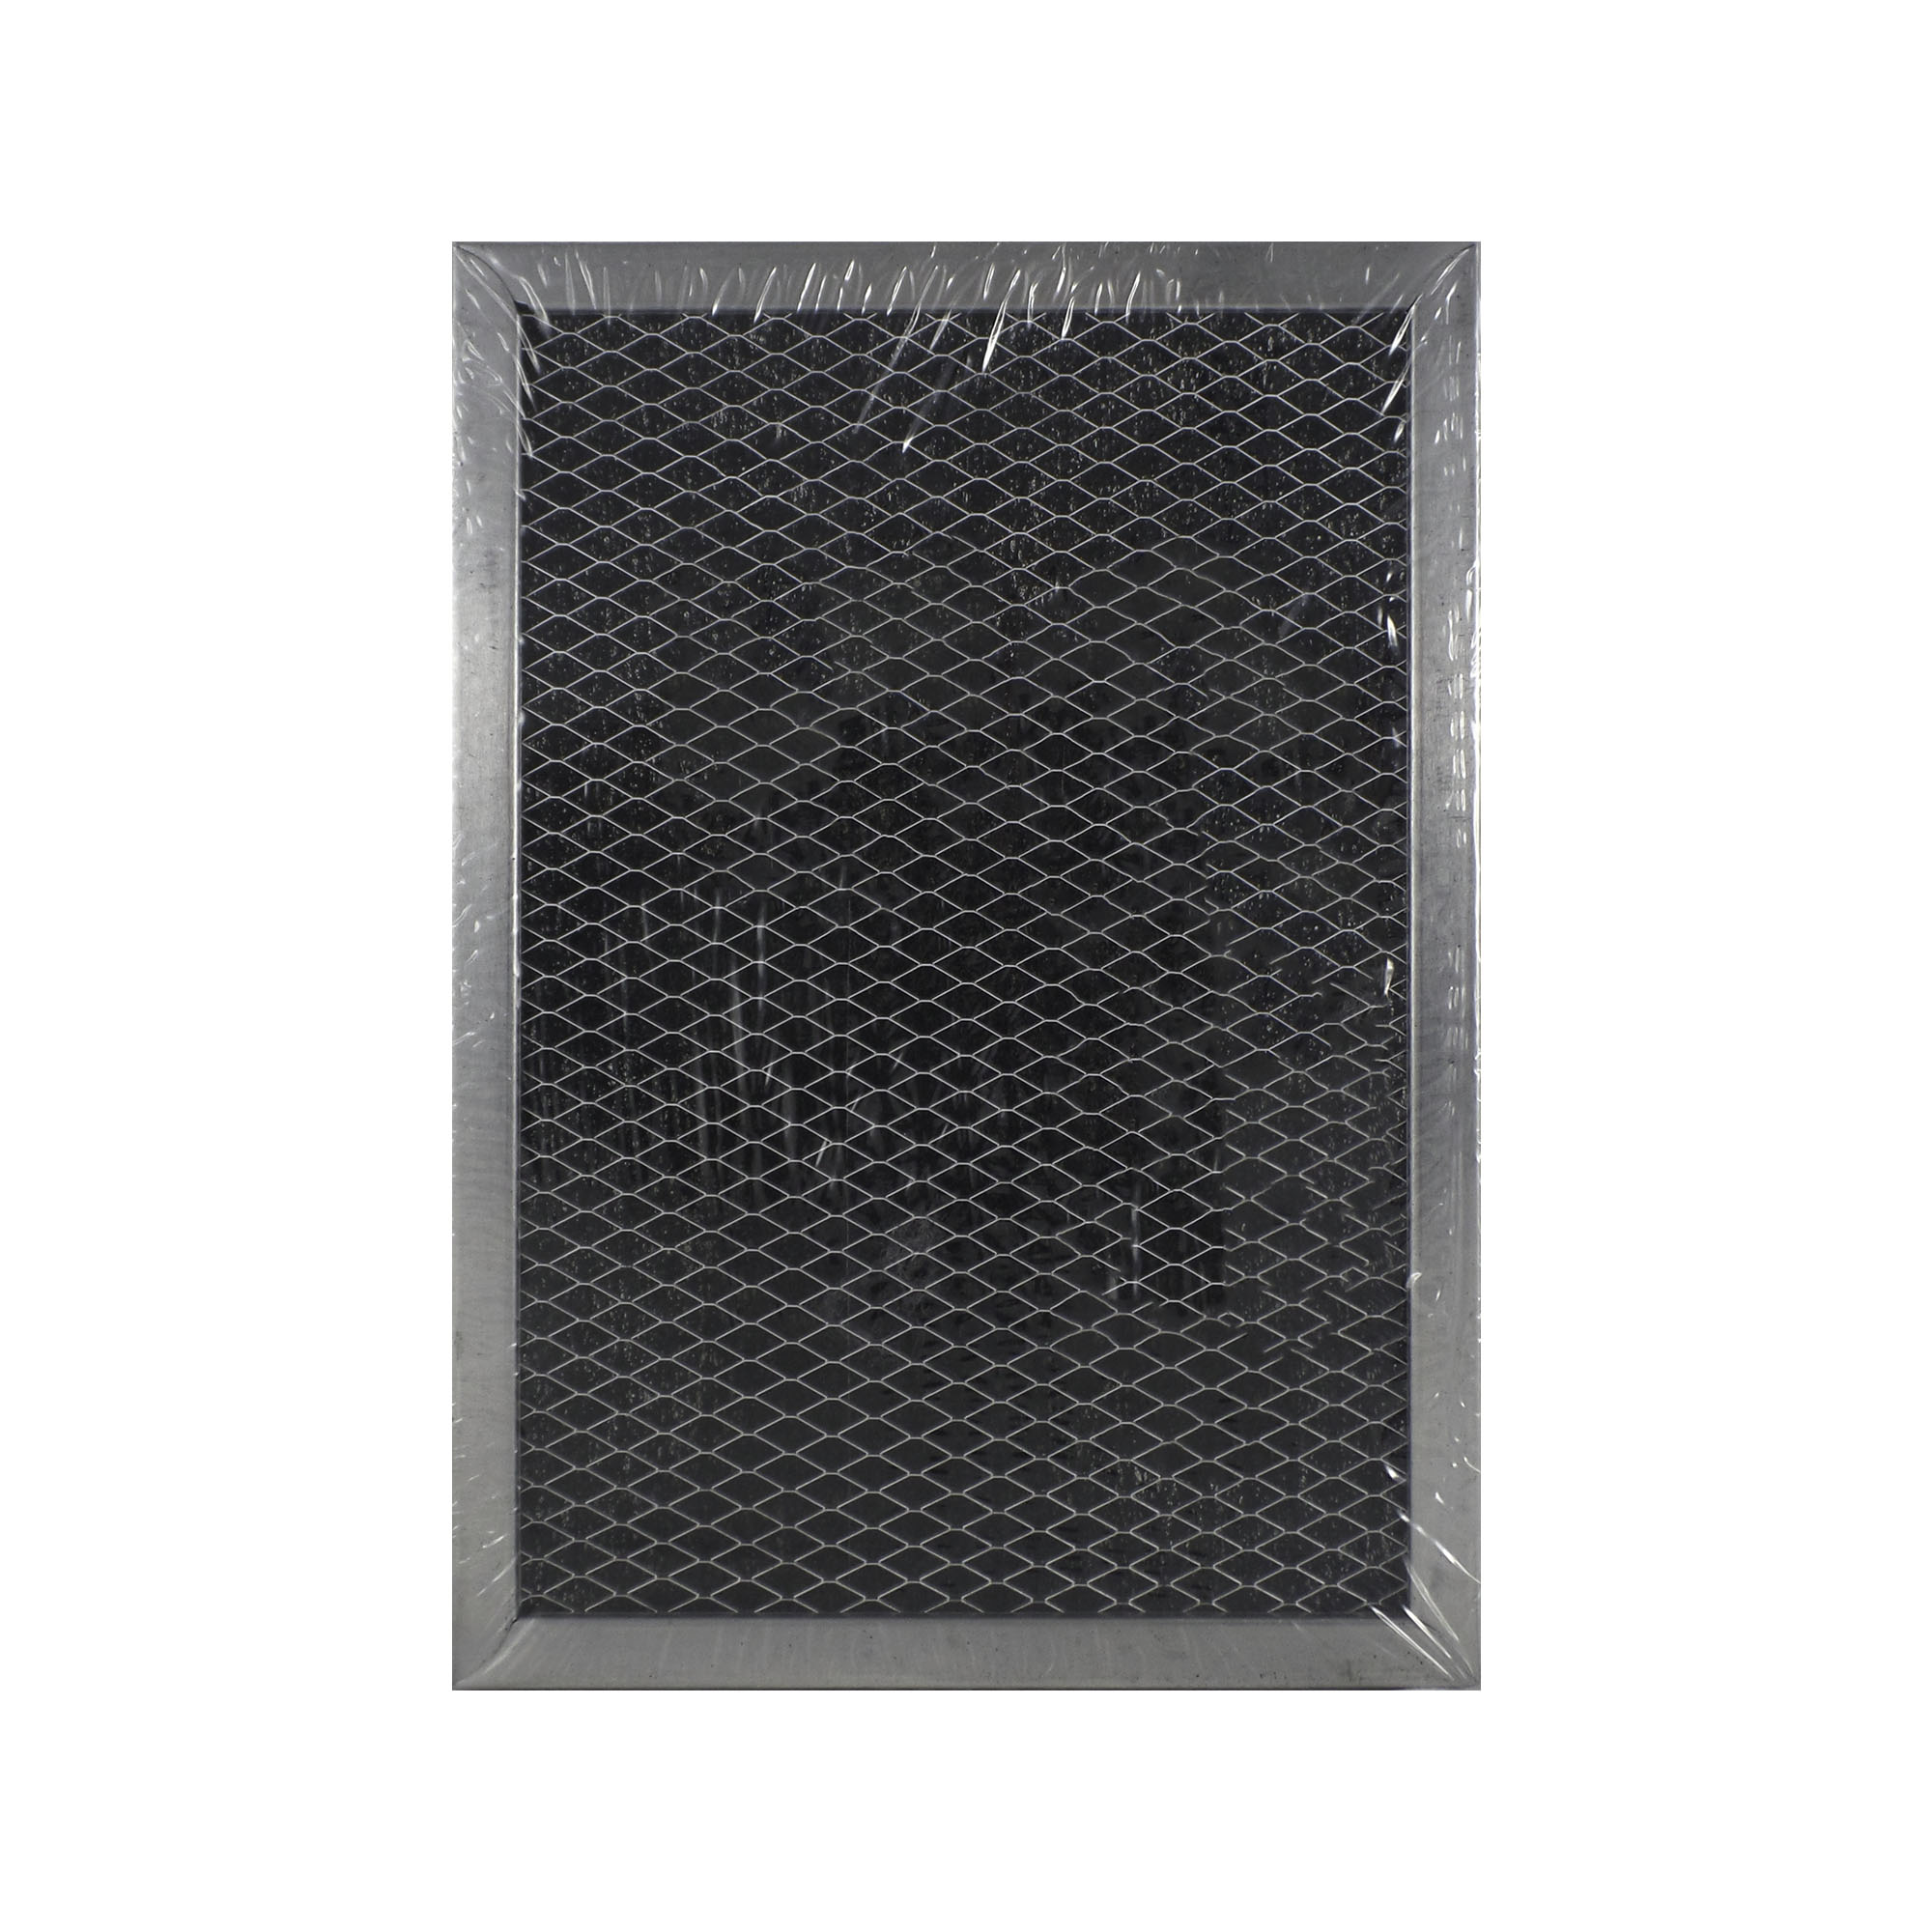 Ge Jvm1850sm4ss Charcoal Carbon Filter For Microwave Ovens